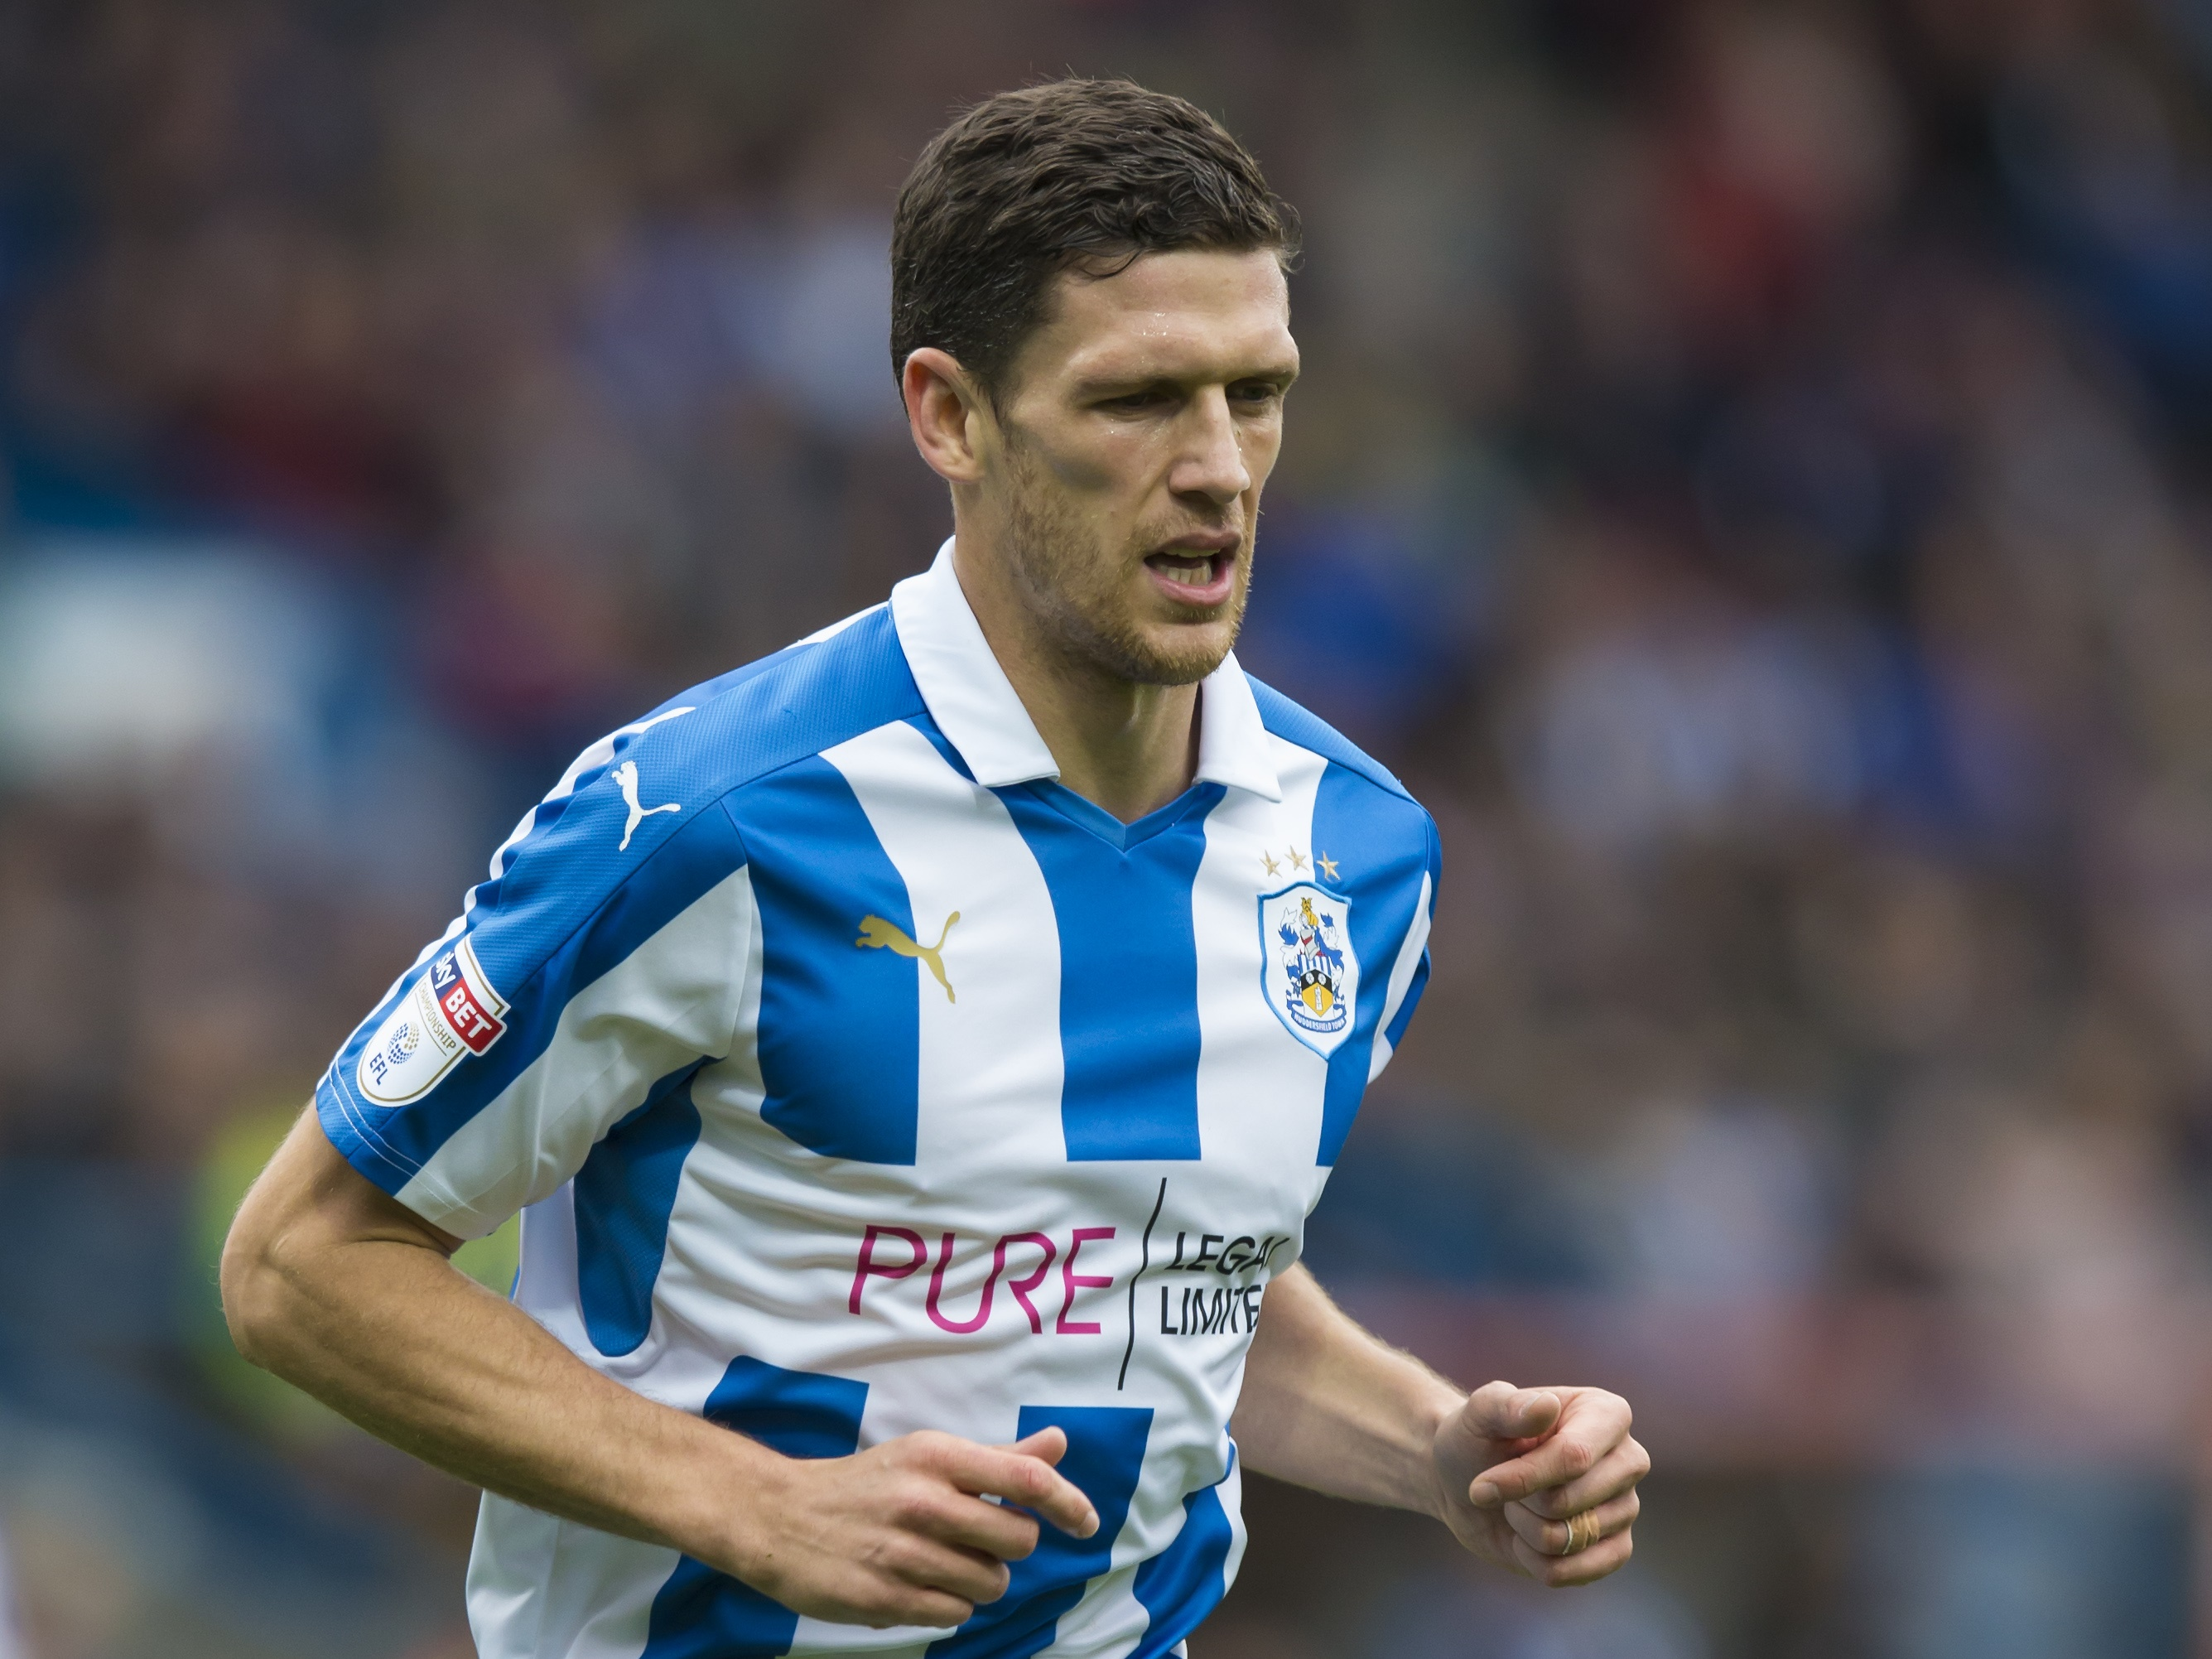 Huddersfield Town defender Mark Hudson during the Championship match against Sheffield Wednesday on October 16, 2016